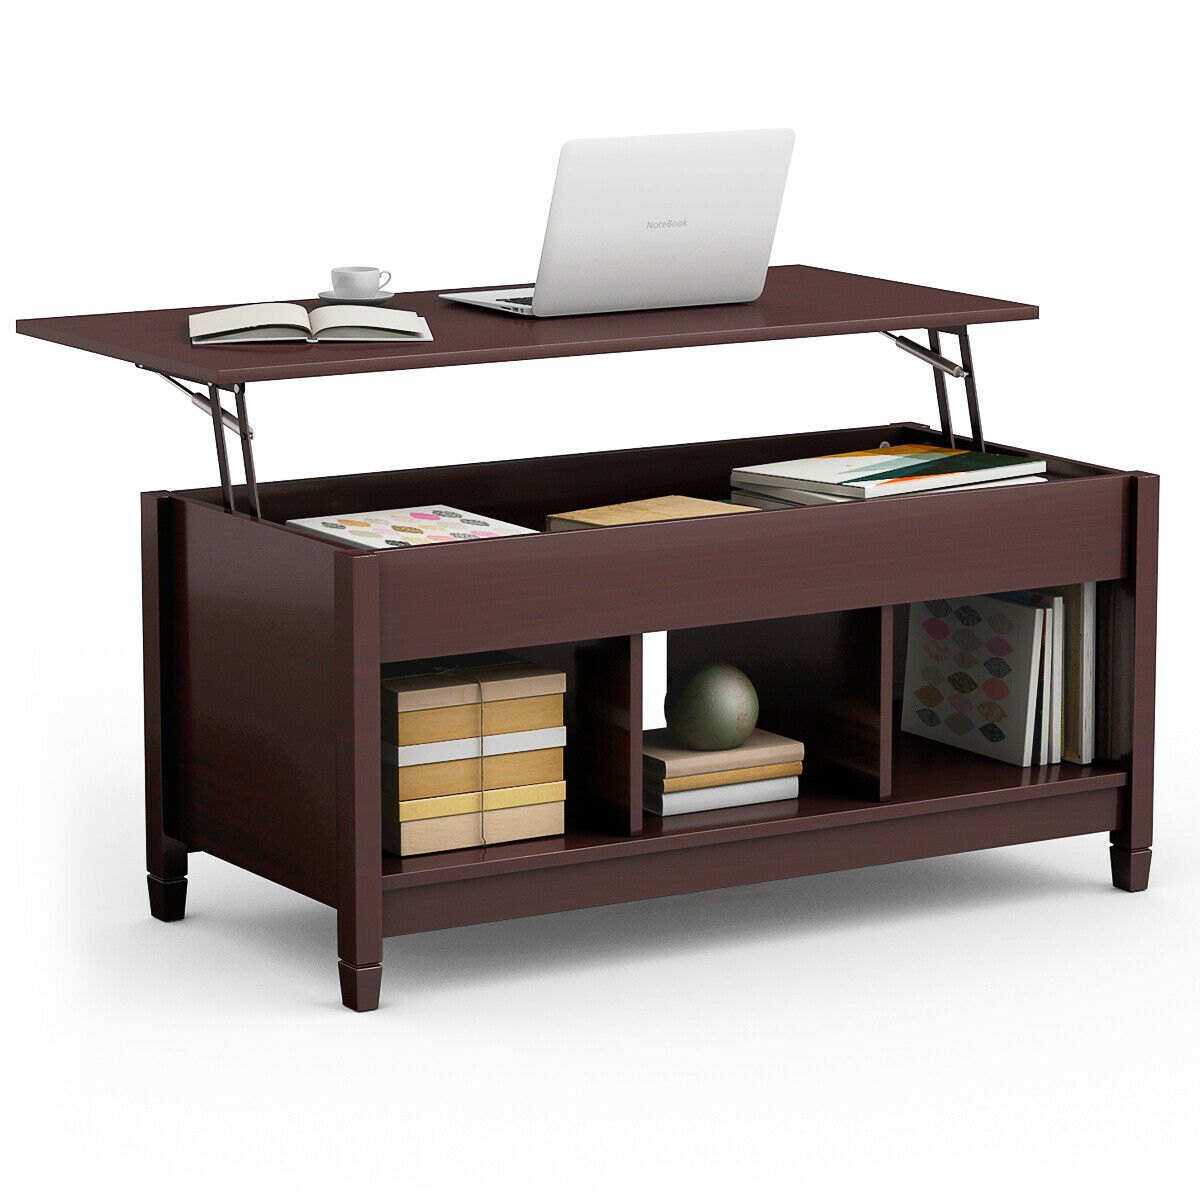 Costway Lift Top Coffee Table + $17.84 Rakuten.com Credit